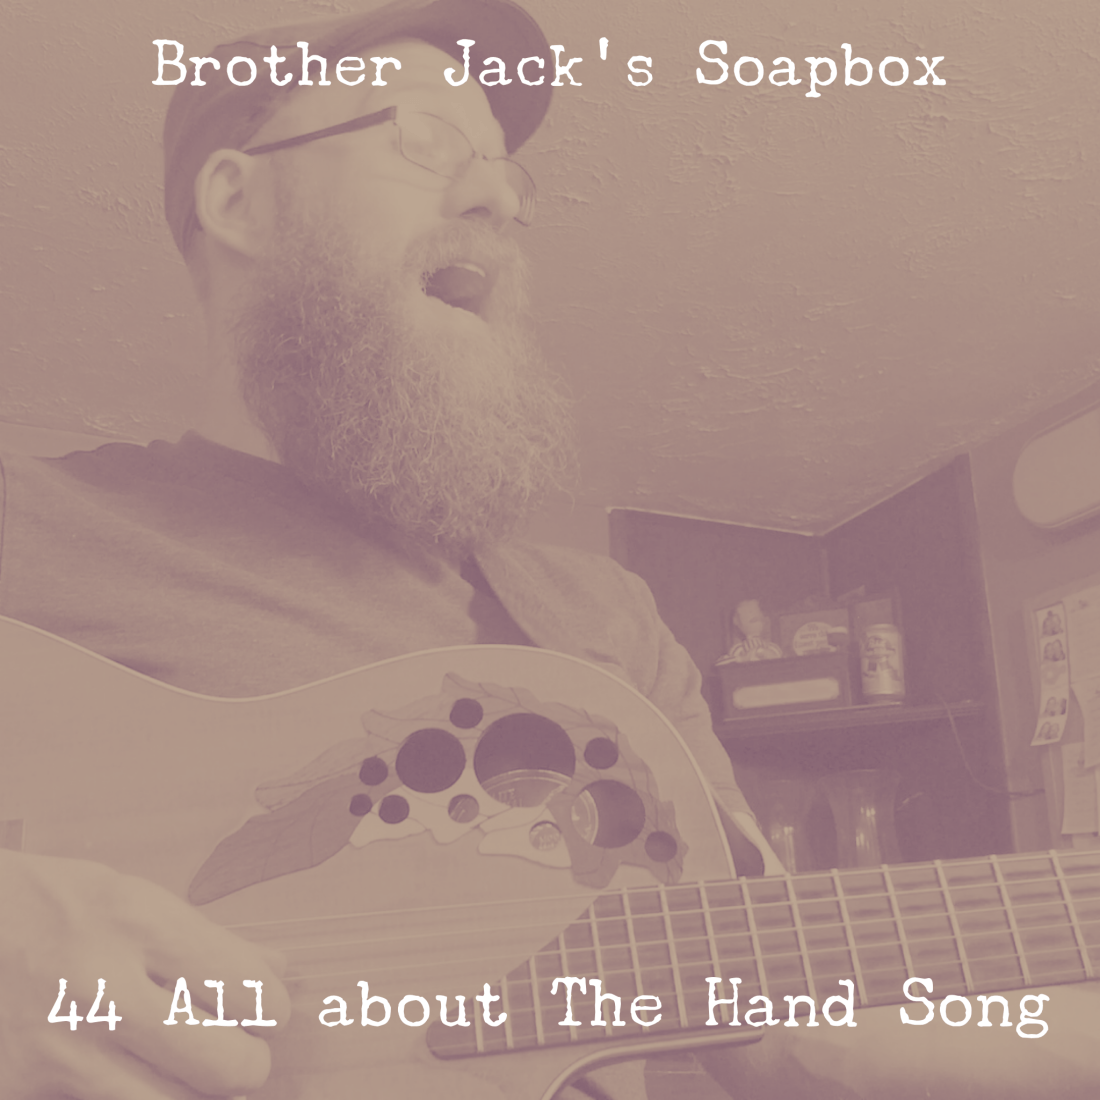 44 All about The Hand Song